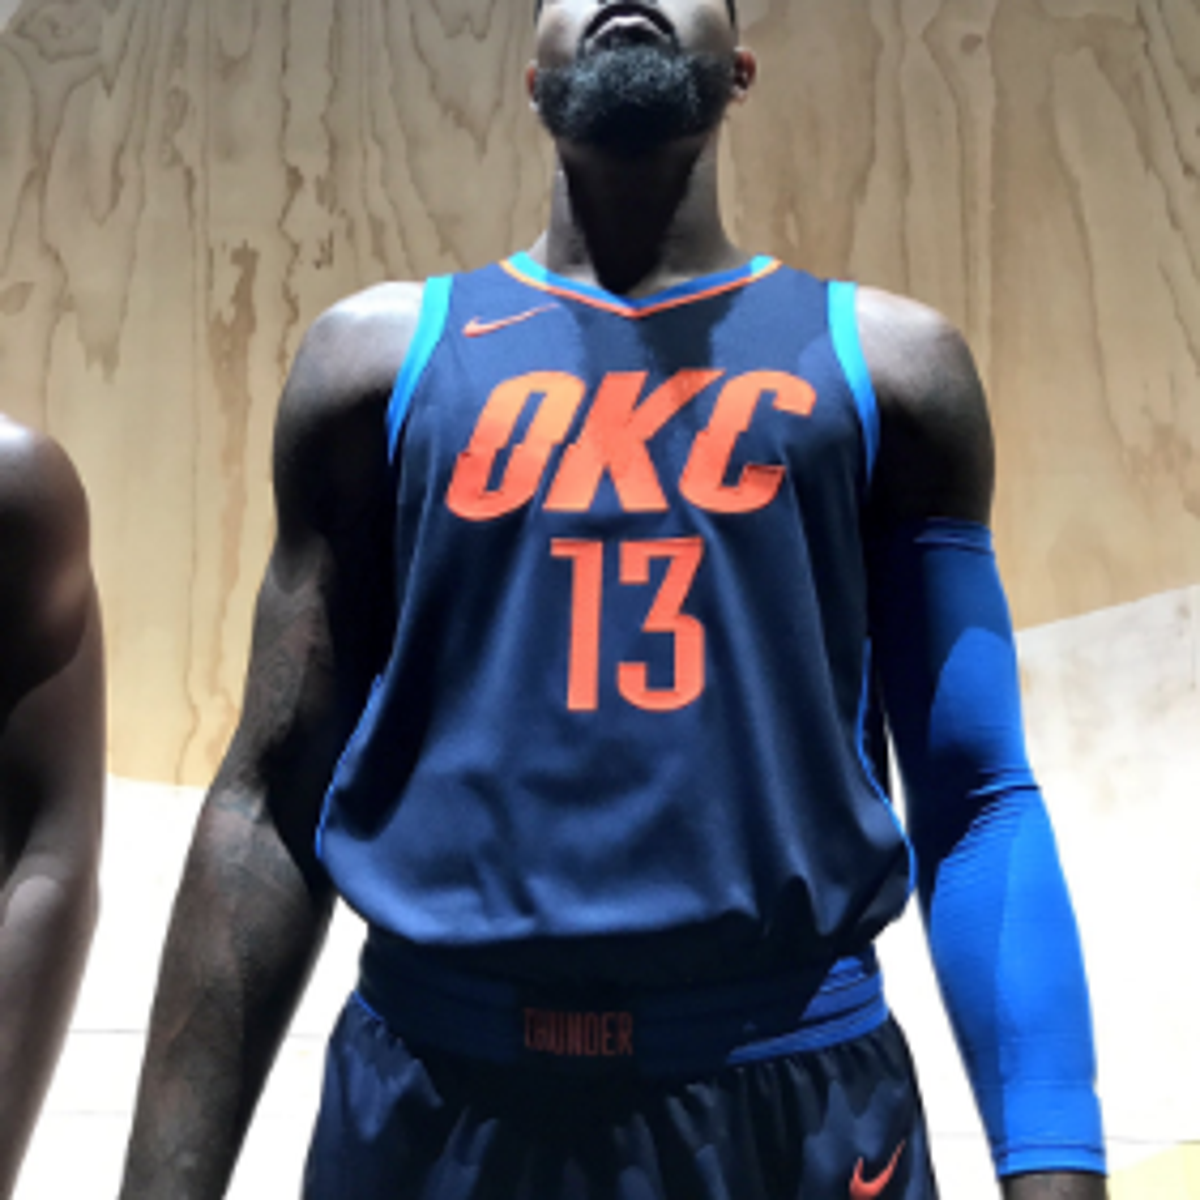 promo code be1e8 f9813 ThunderNotes: Here are your photos of the Thunder's new ...